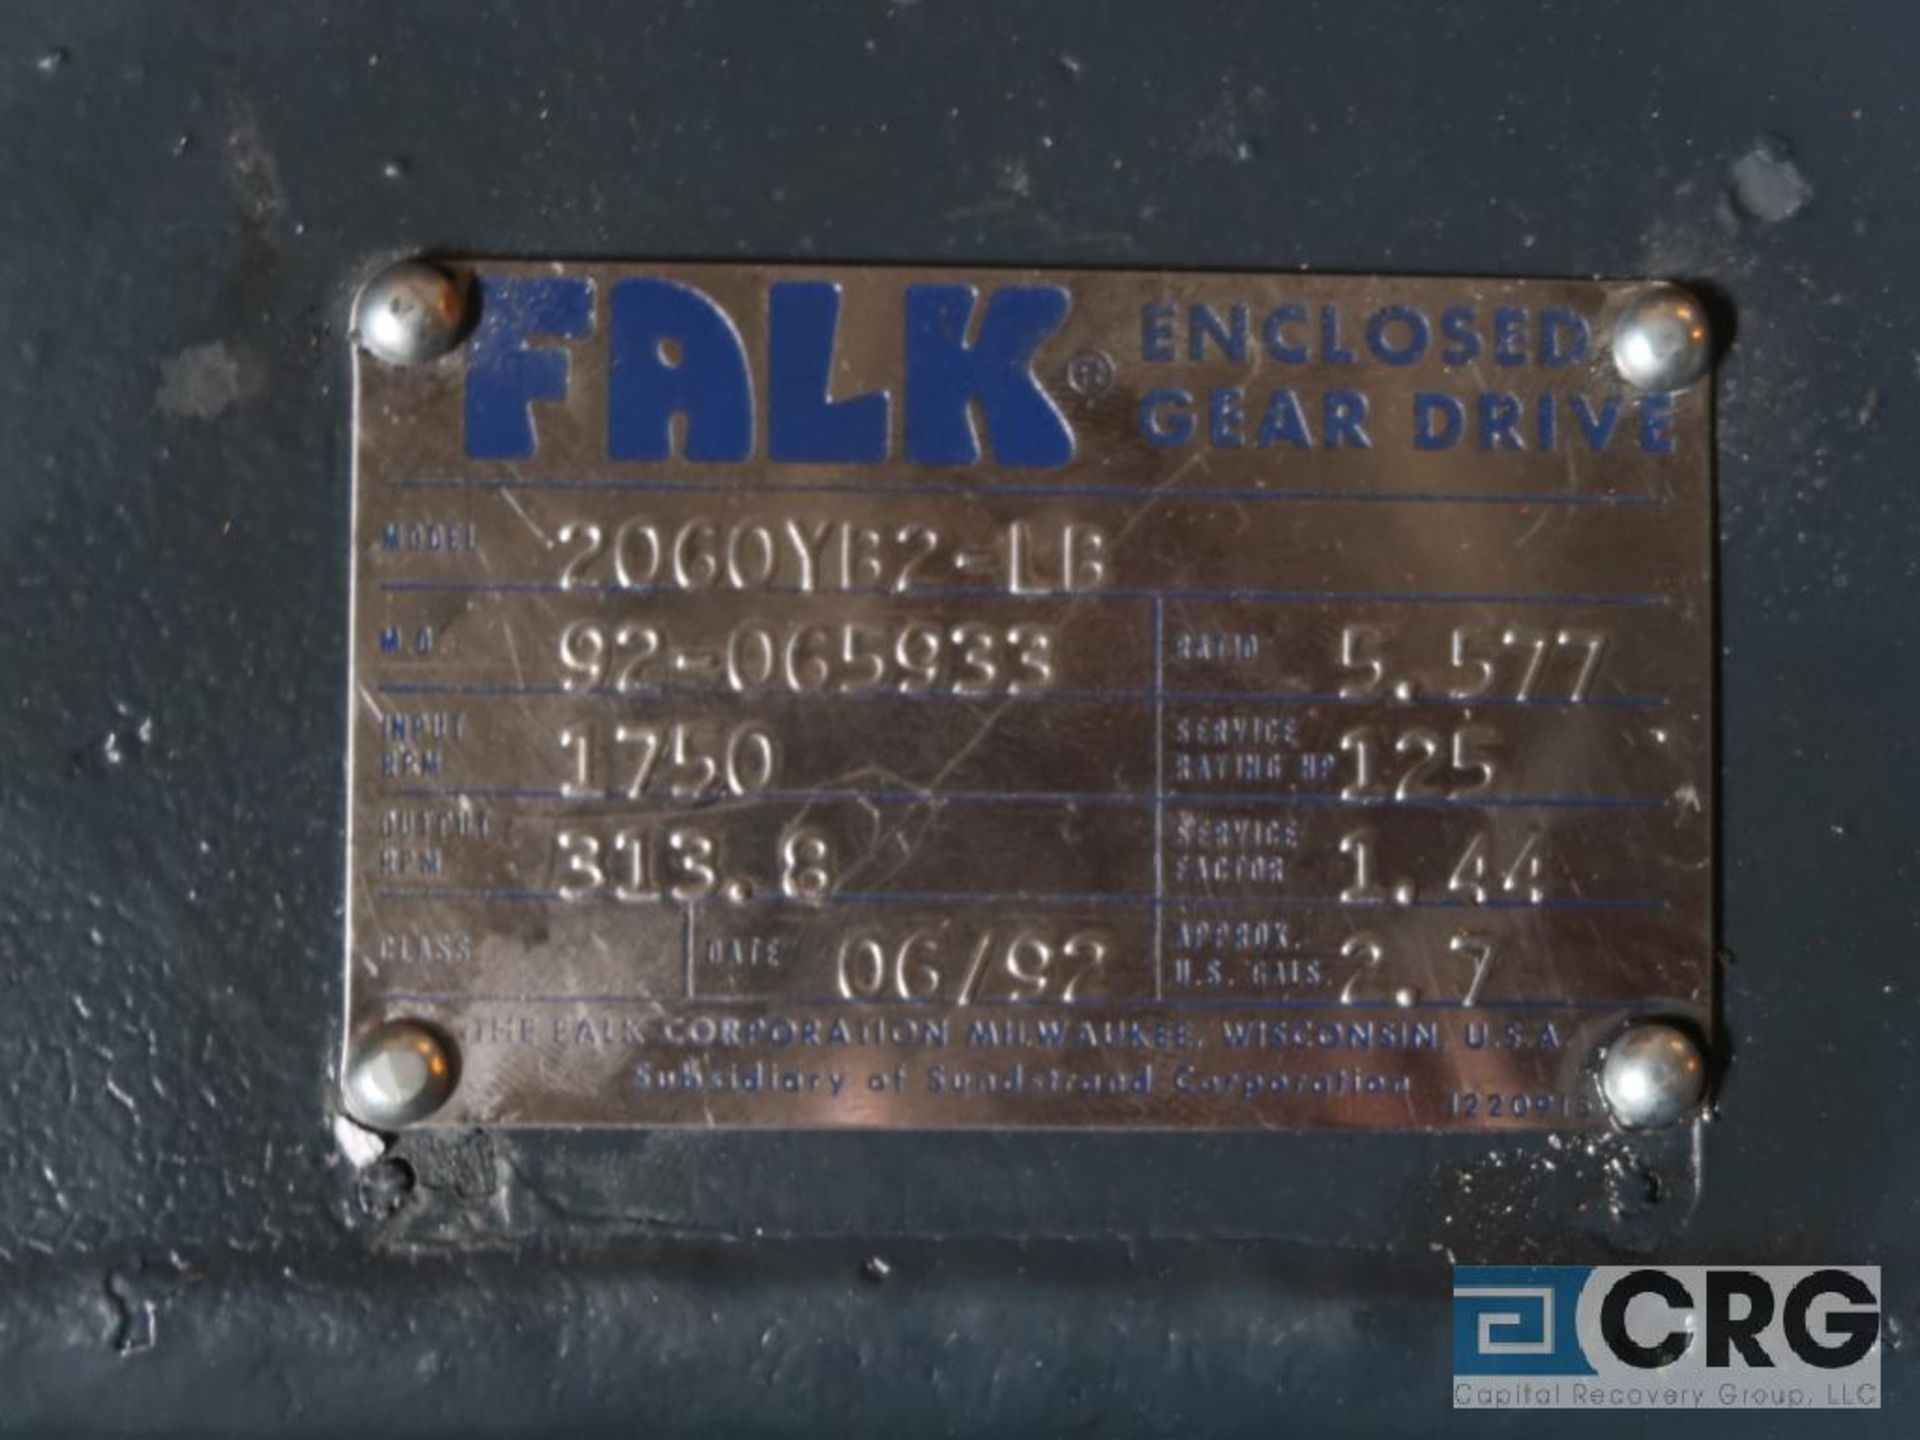 Falk 2060YB2 LB gear drive, ratio-5.577, input RPM 1,750, output RPM 313.8, service rate HP. 125, - Image 3 of 3